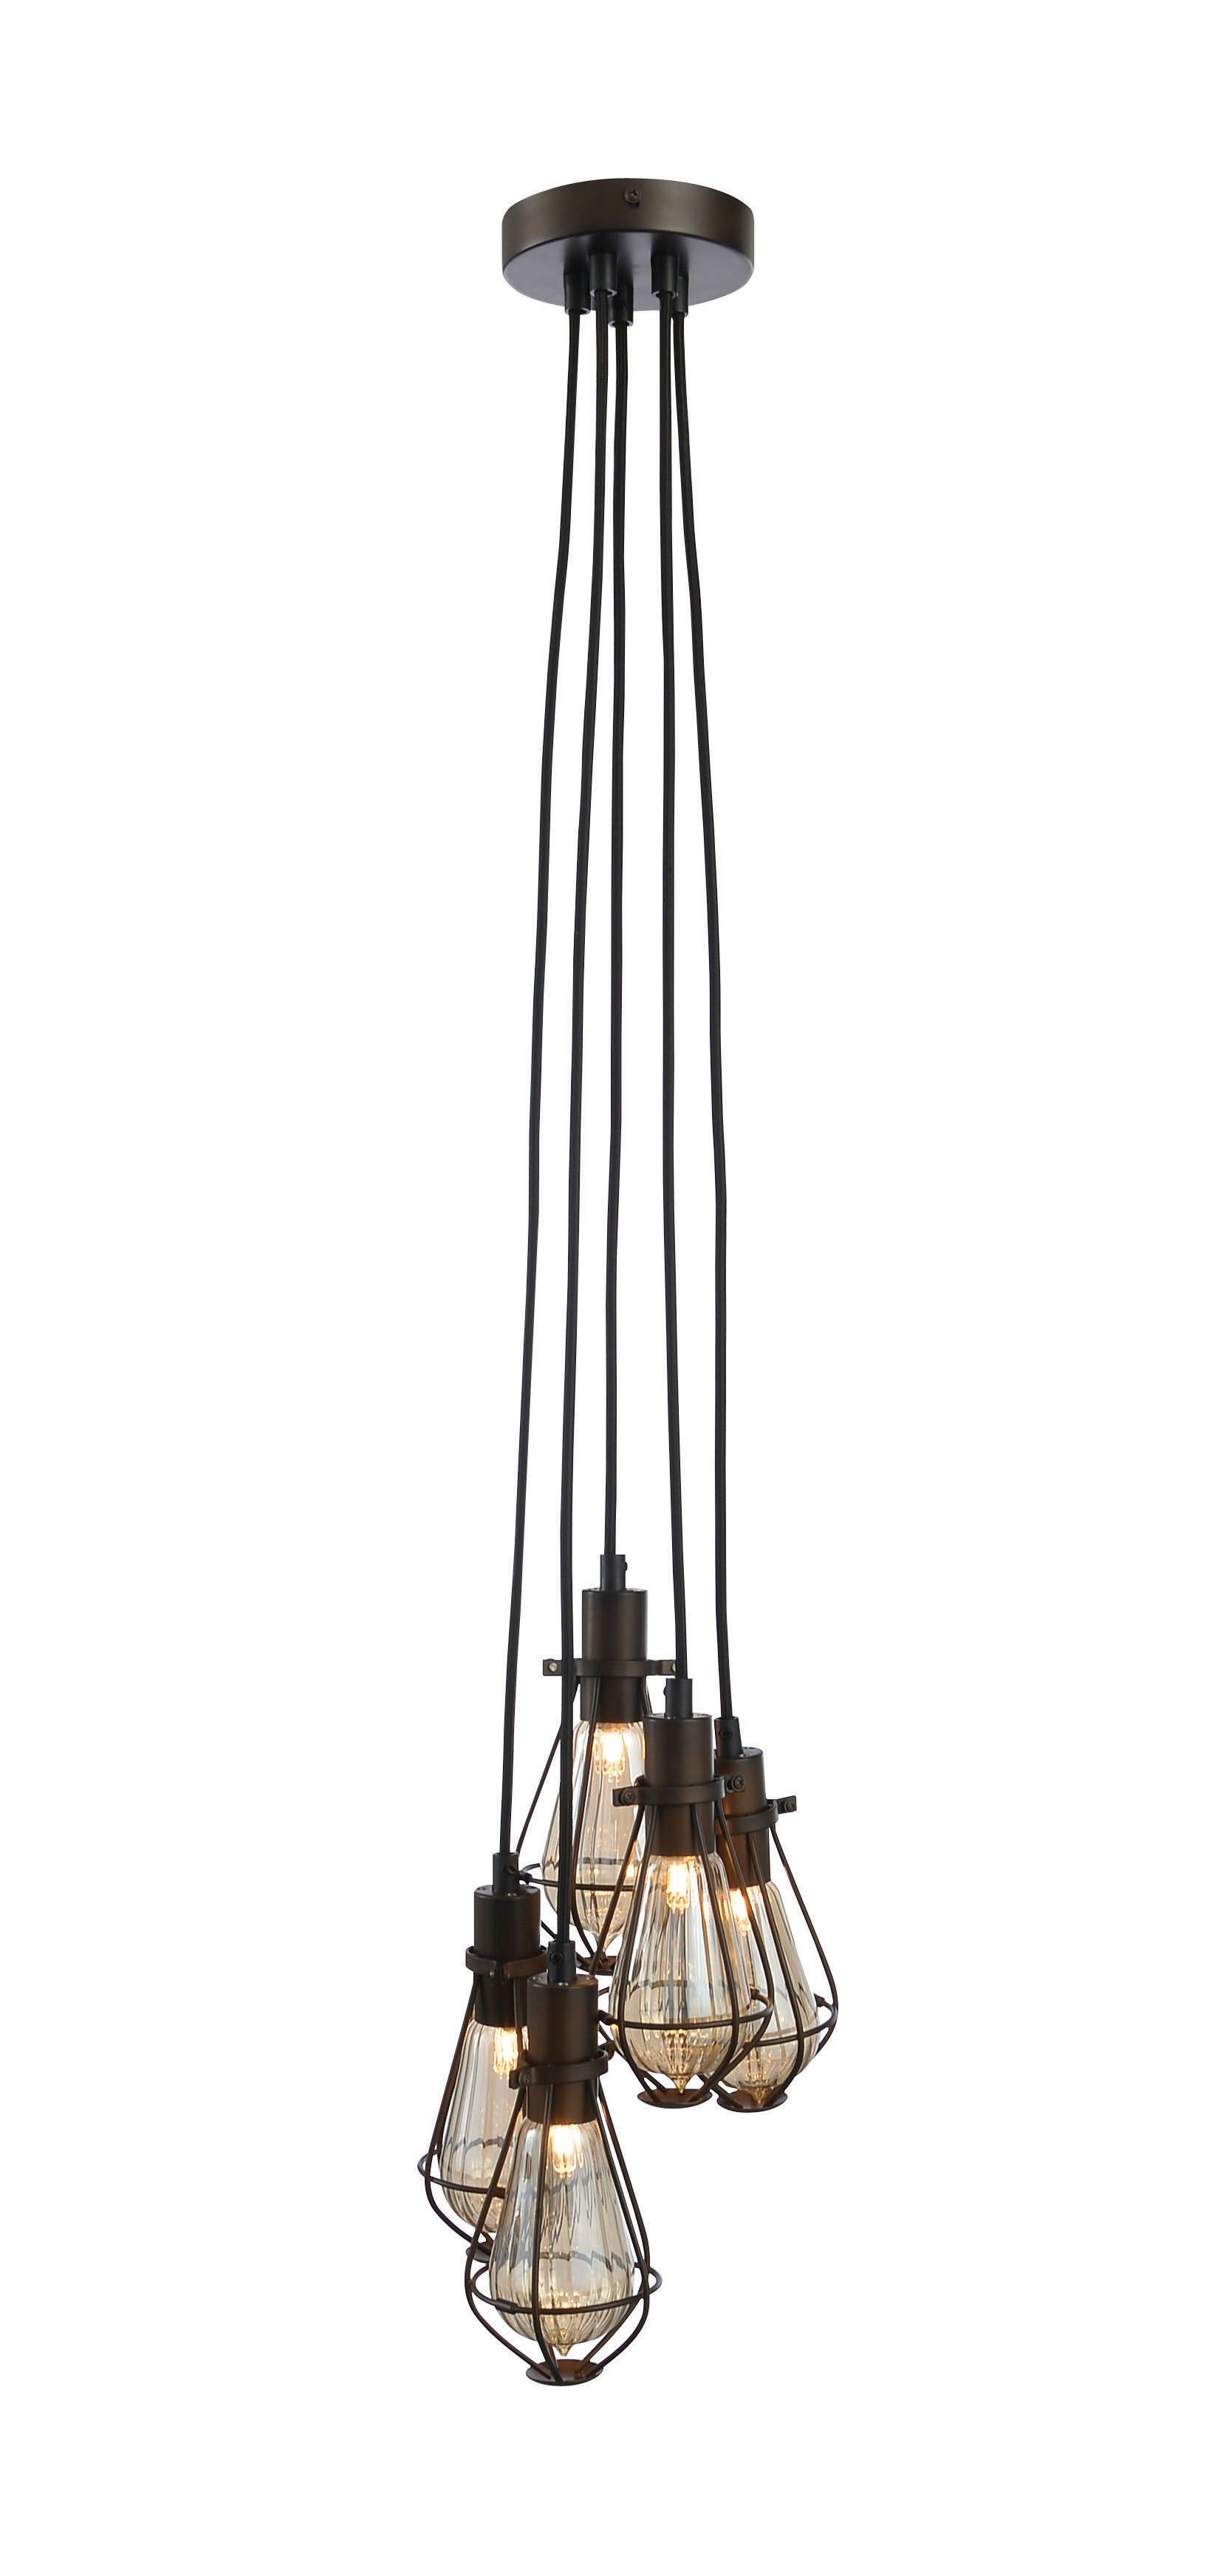 Outdoor Ceiling Lights B And Q : Ananes black bronze effect lamp ceiling light